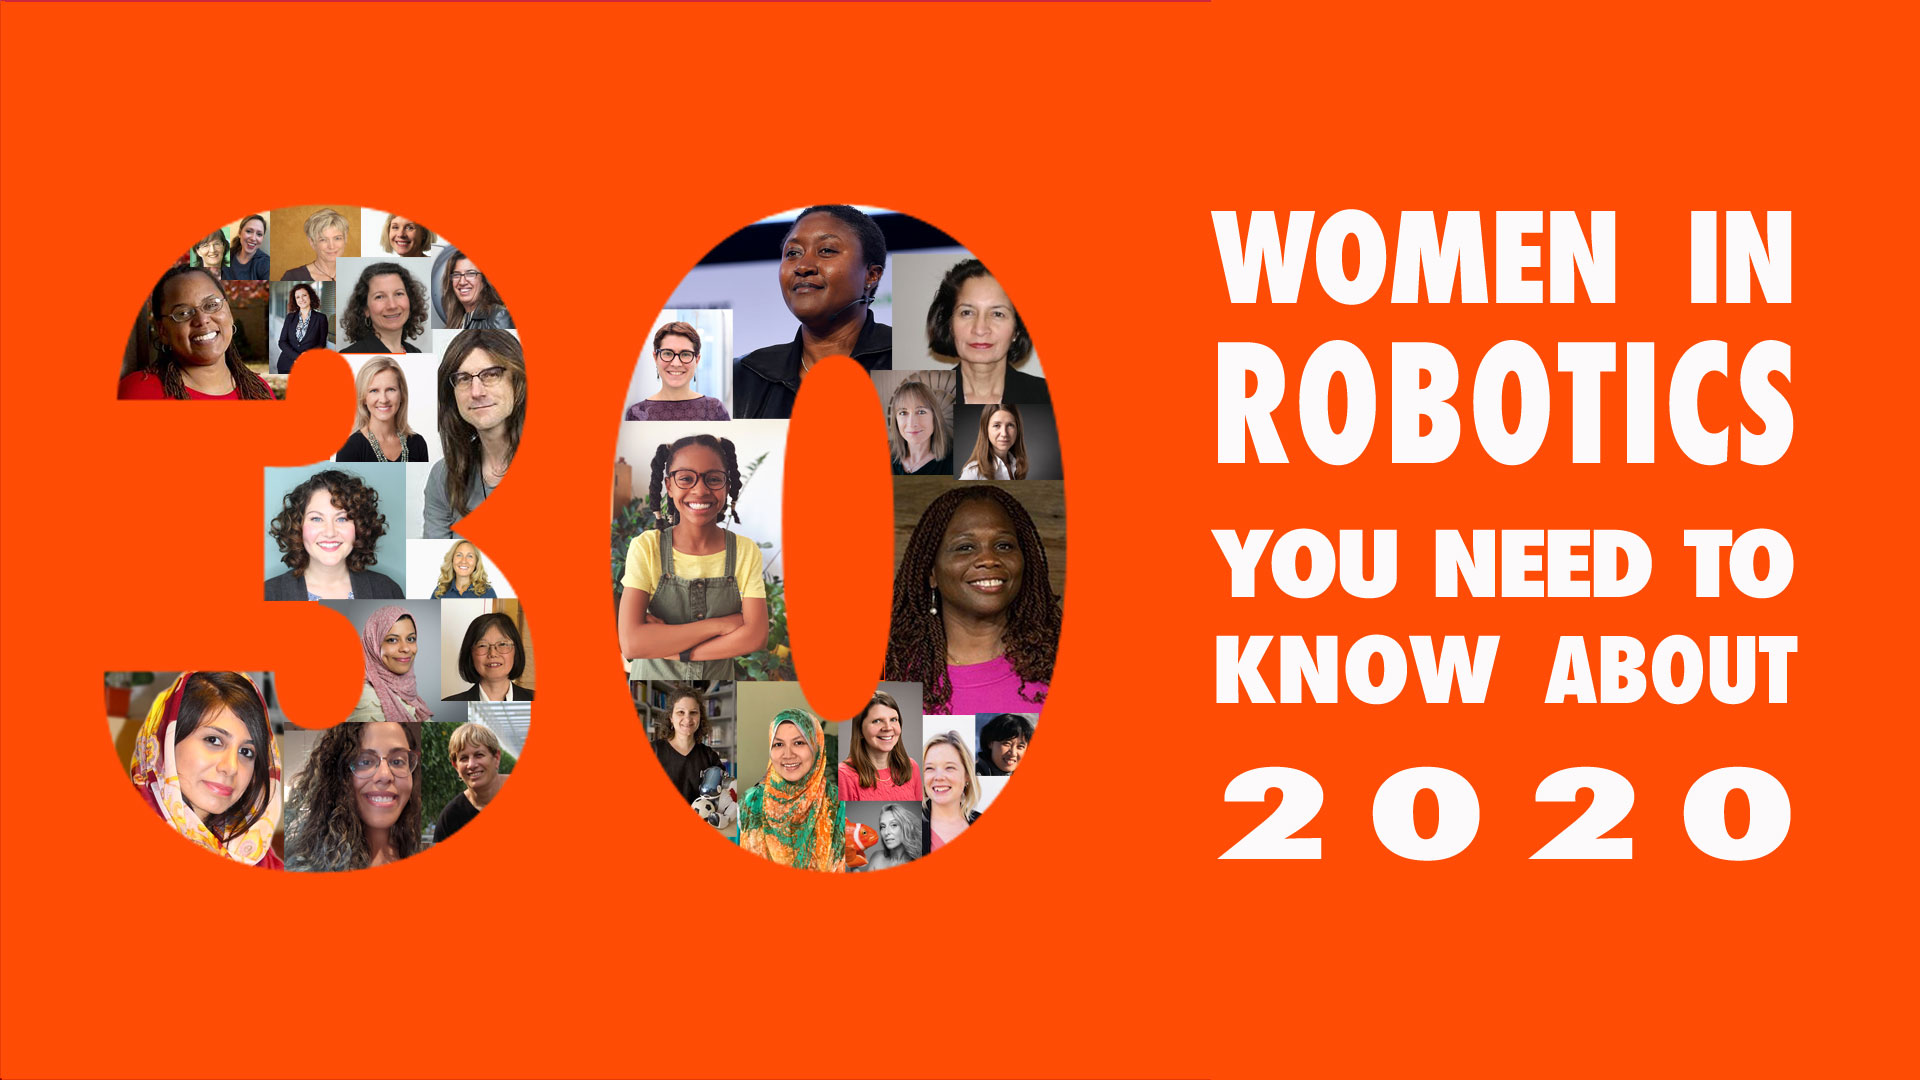 30 women in robotics you need to know about – 2020